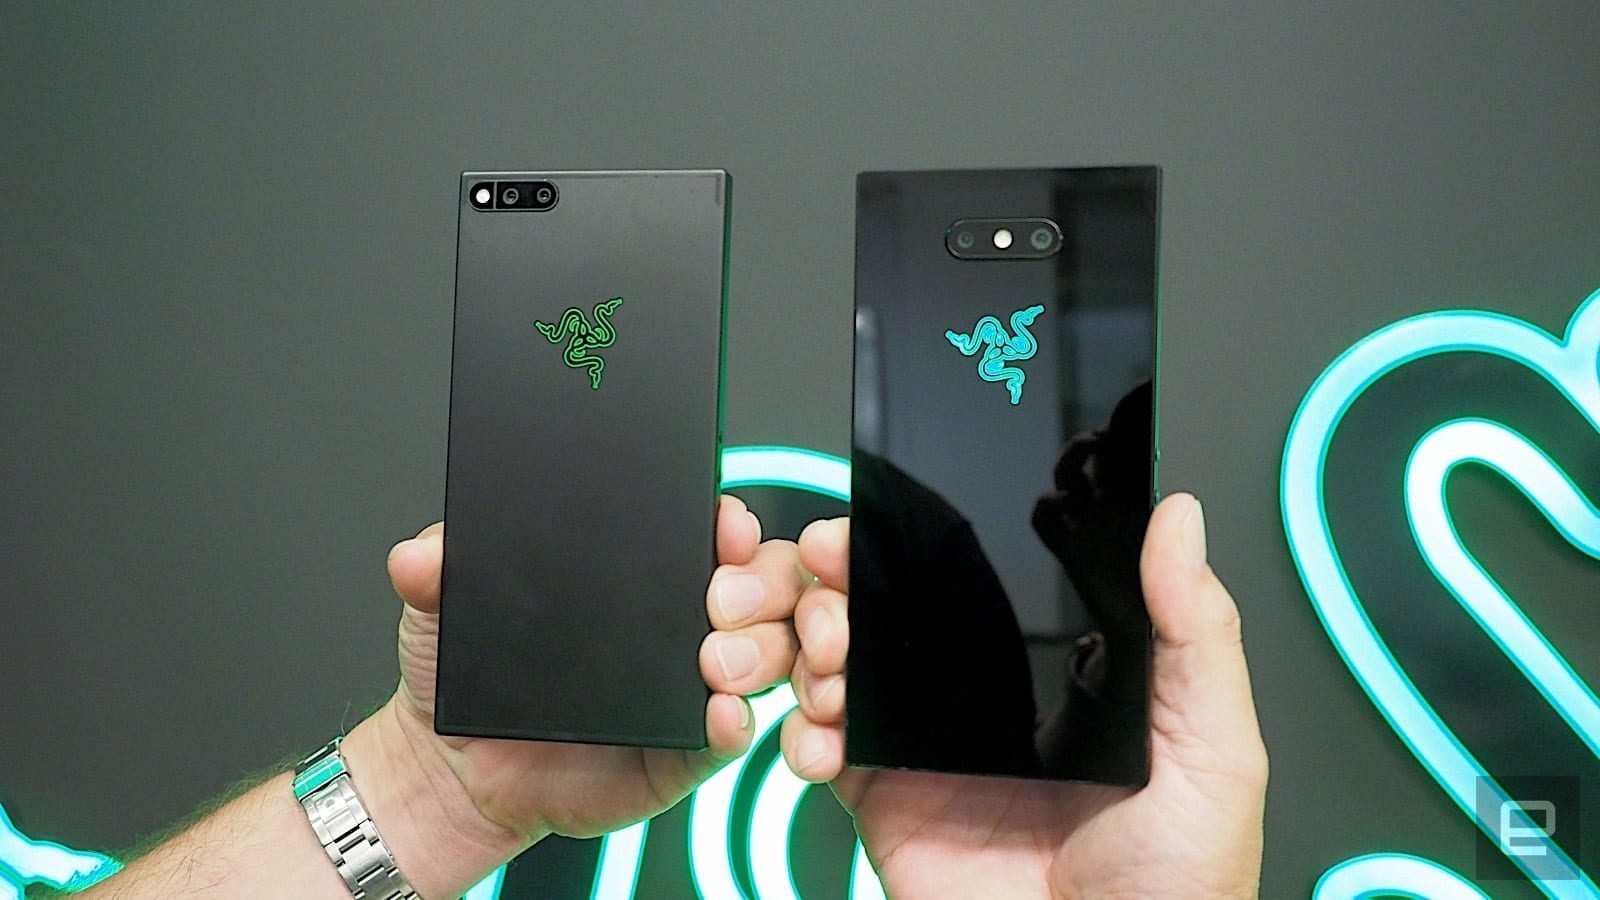 razer phone 1 vs. 2